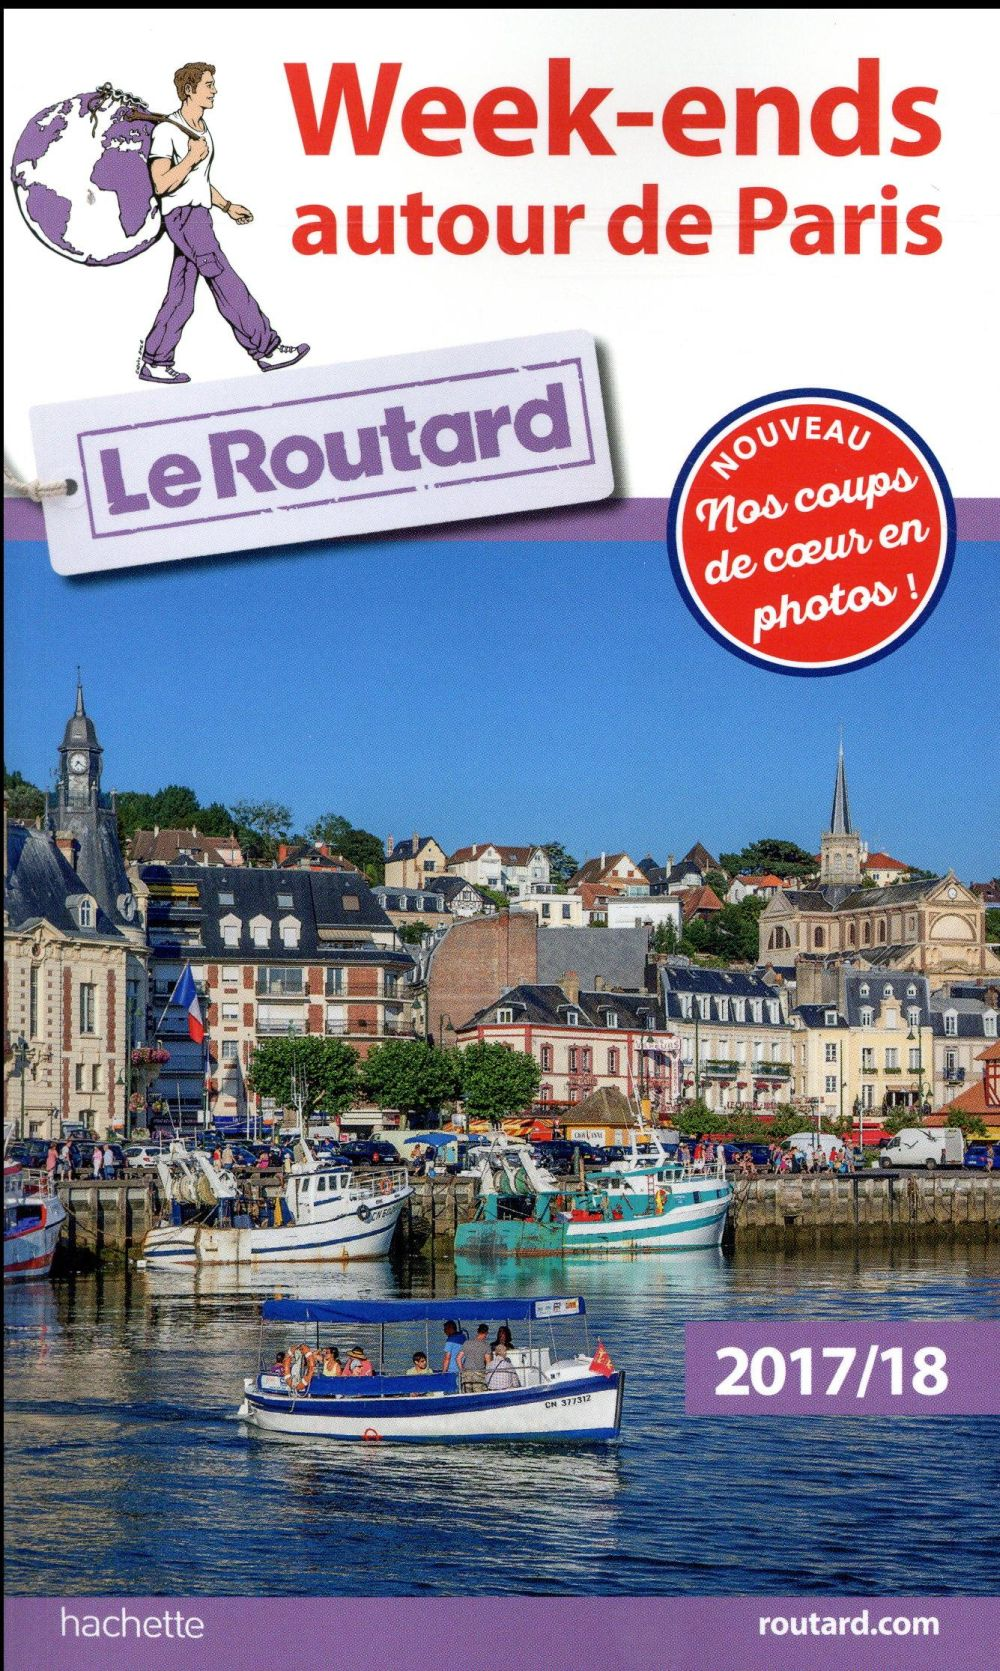 GUIDE DU ROUTARD WEEK-ENDS AUTOUR DE PARIS 201718